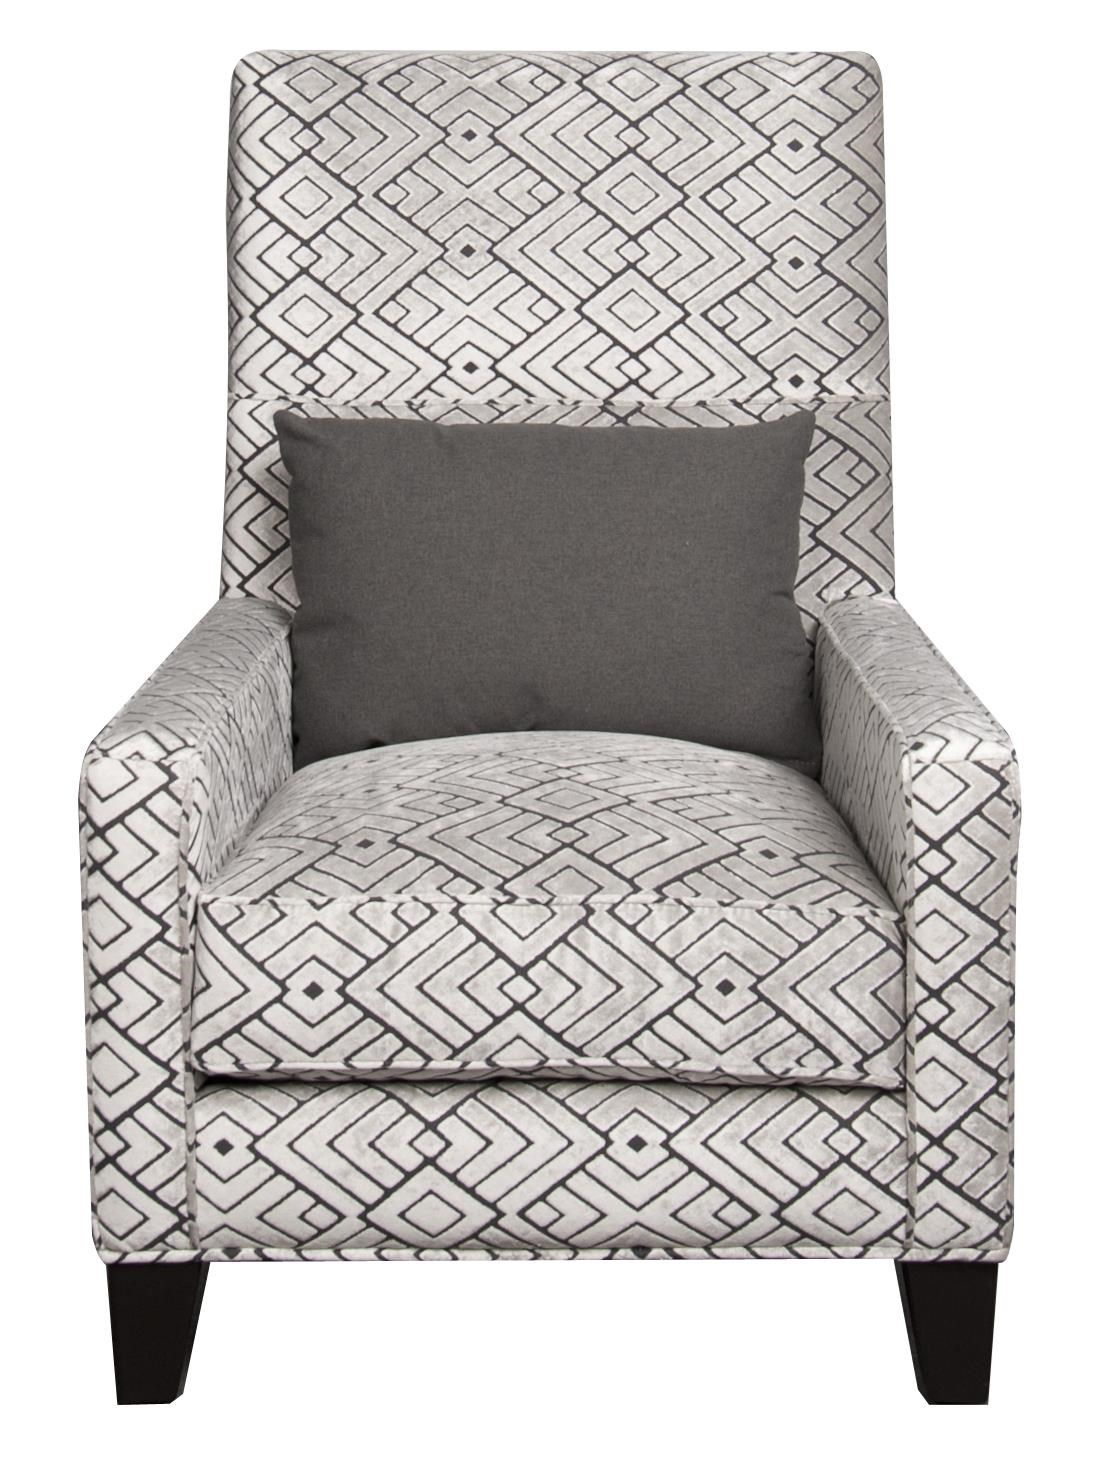 Morris Home Furnishings Blaine--- Blaine Accent Chair - Item Number: 160514252